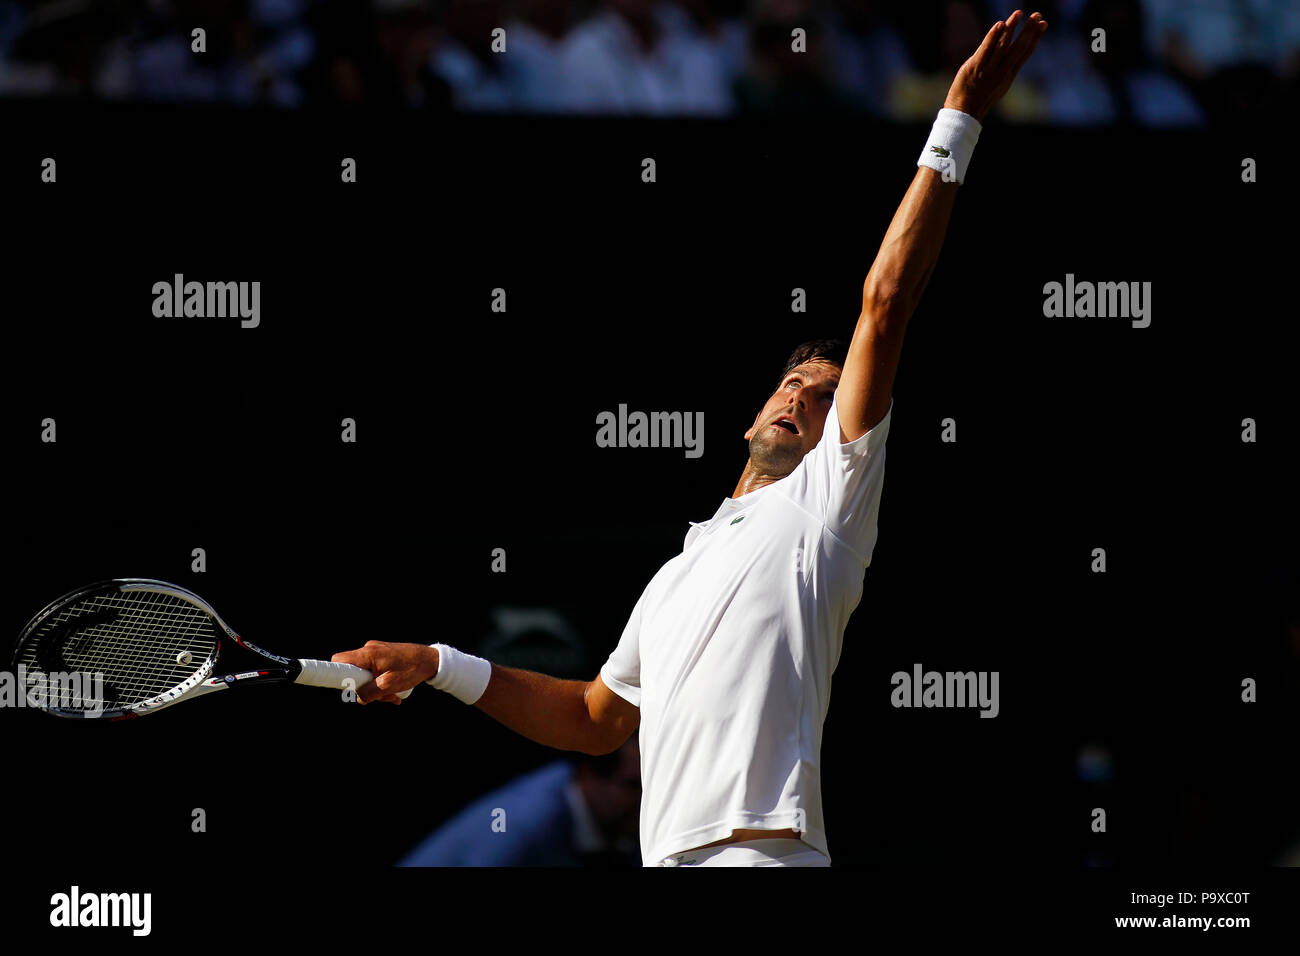 London, England - July 7, 2018.  Wimbledon Tennis: Novak Djokovic during his third round match against Great Britain's Kyle Edmund on Center Court at Wimbledon today. - Stock Image